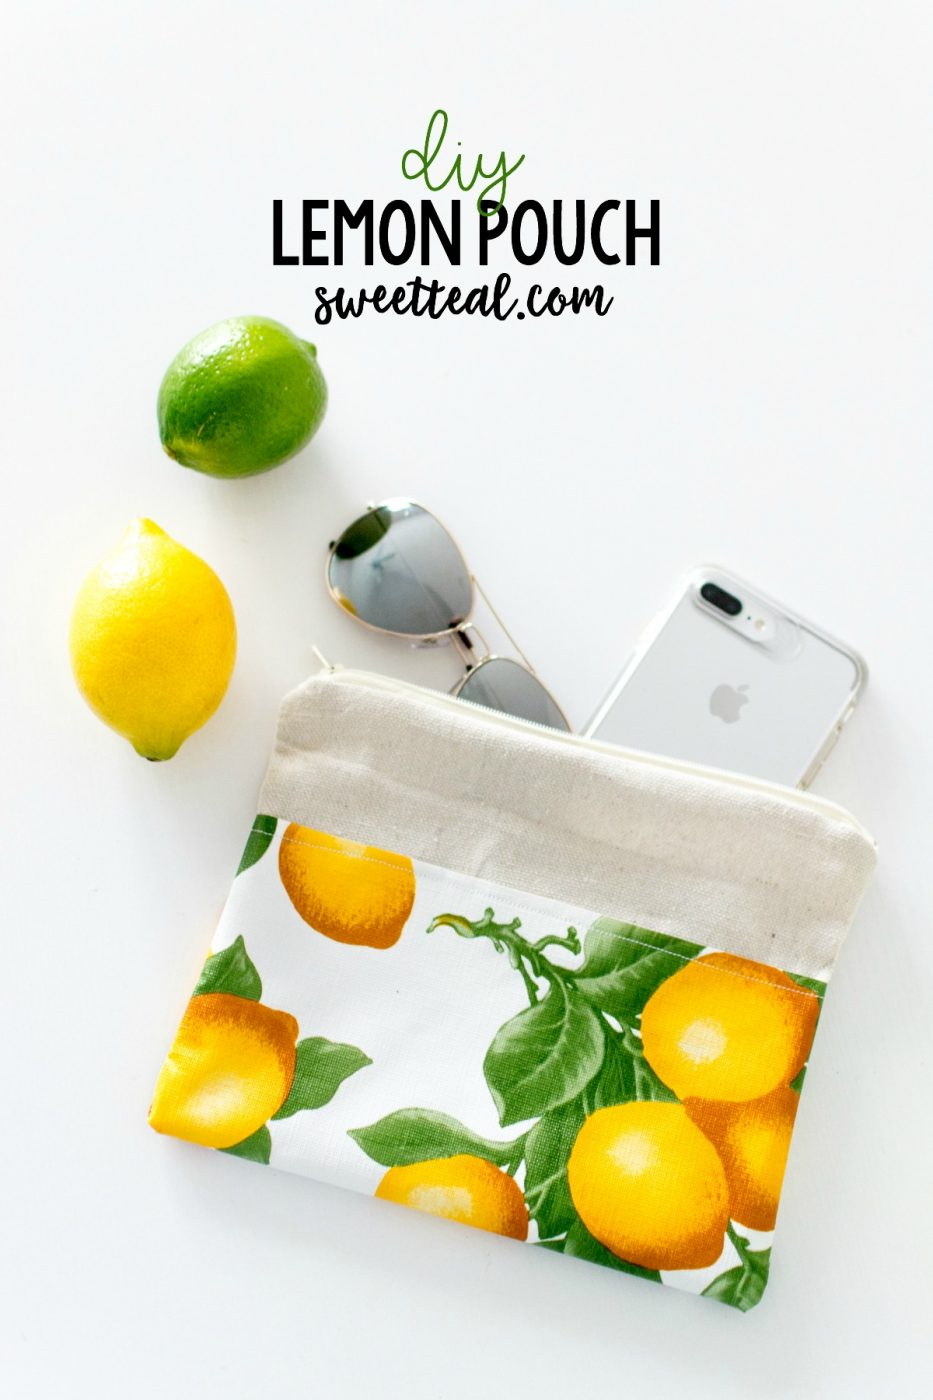 How To Make A Lemon Pouch out of Drop Cloth by Sweet Teal